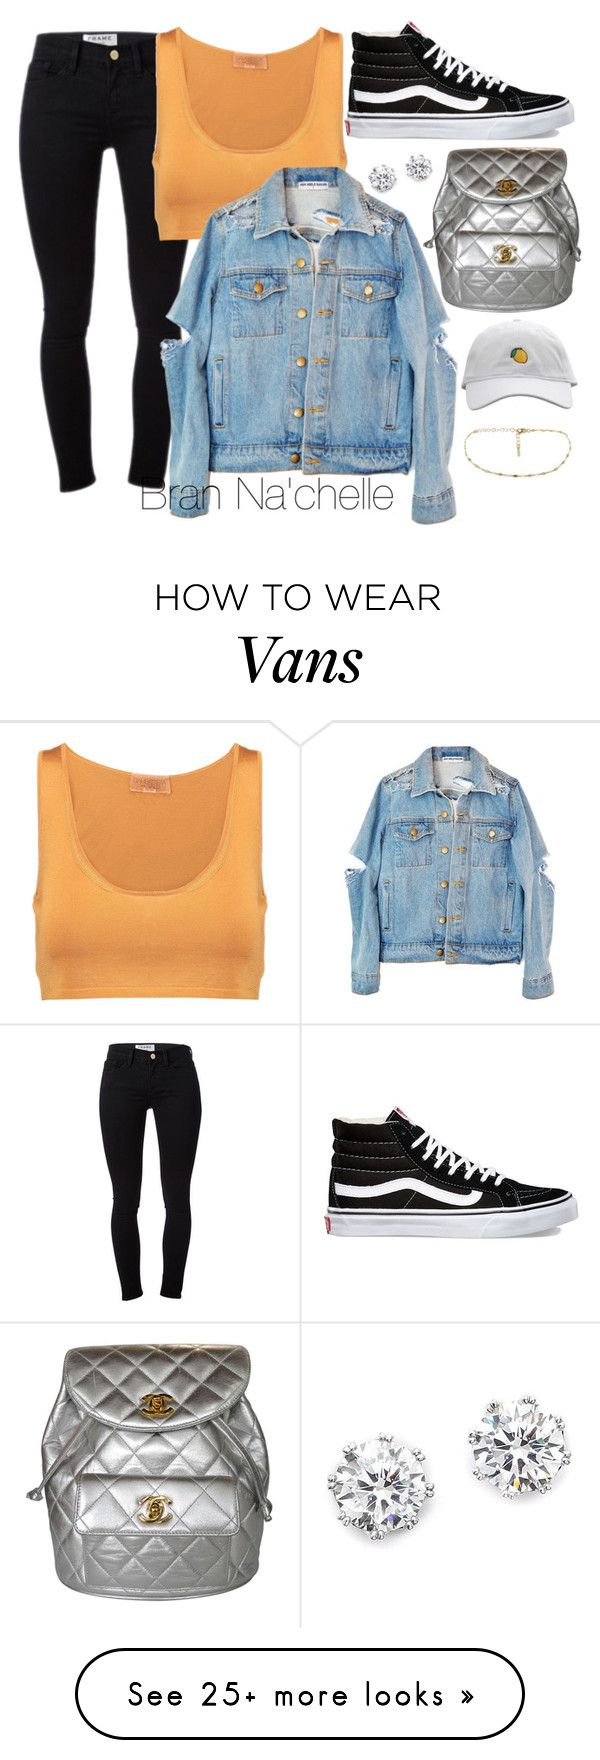 """Untitled #1237"" by brannachelle on Polyvore featuring Kenneth Jay Lane, Frame, Giambattista Valli, Vans and Chanel"